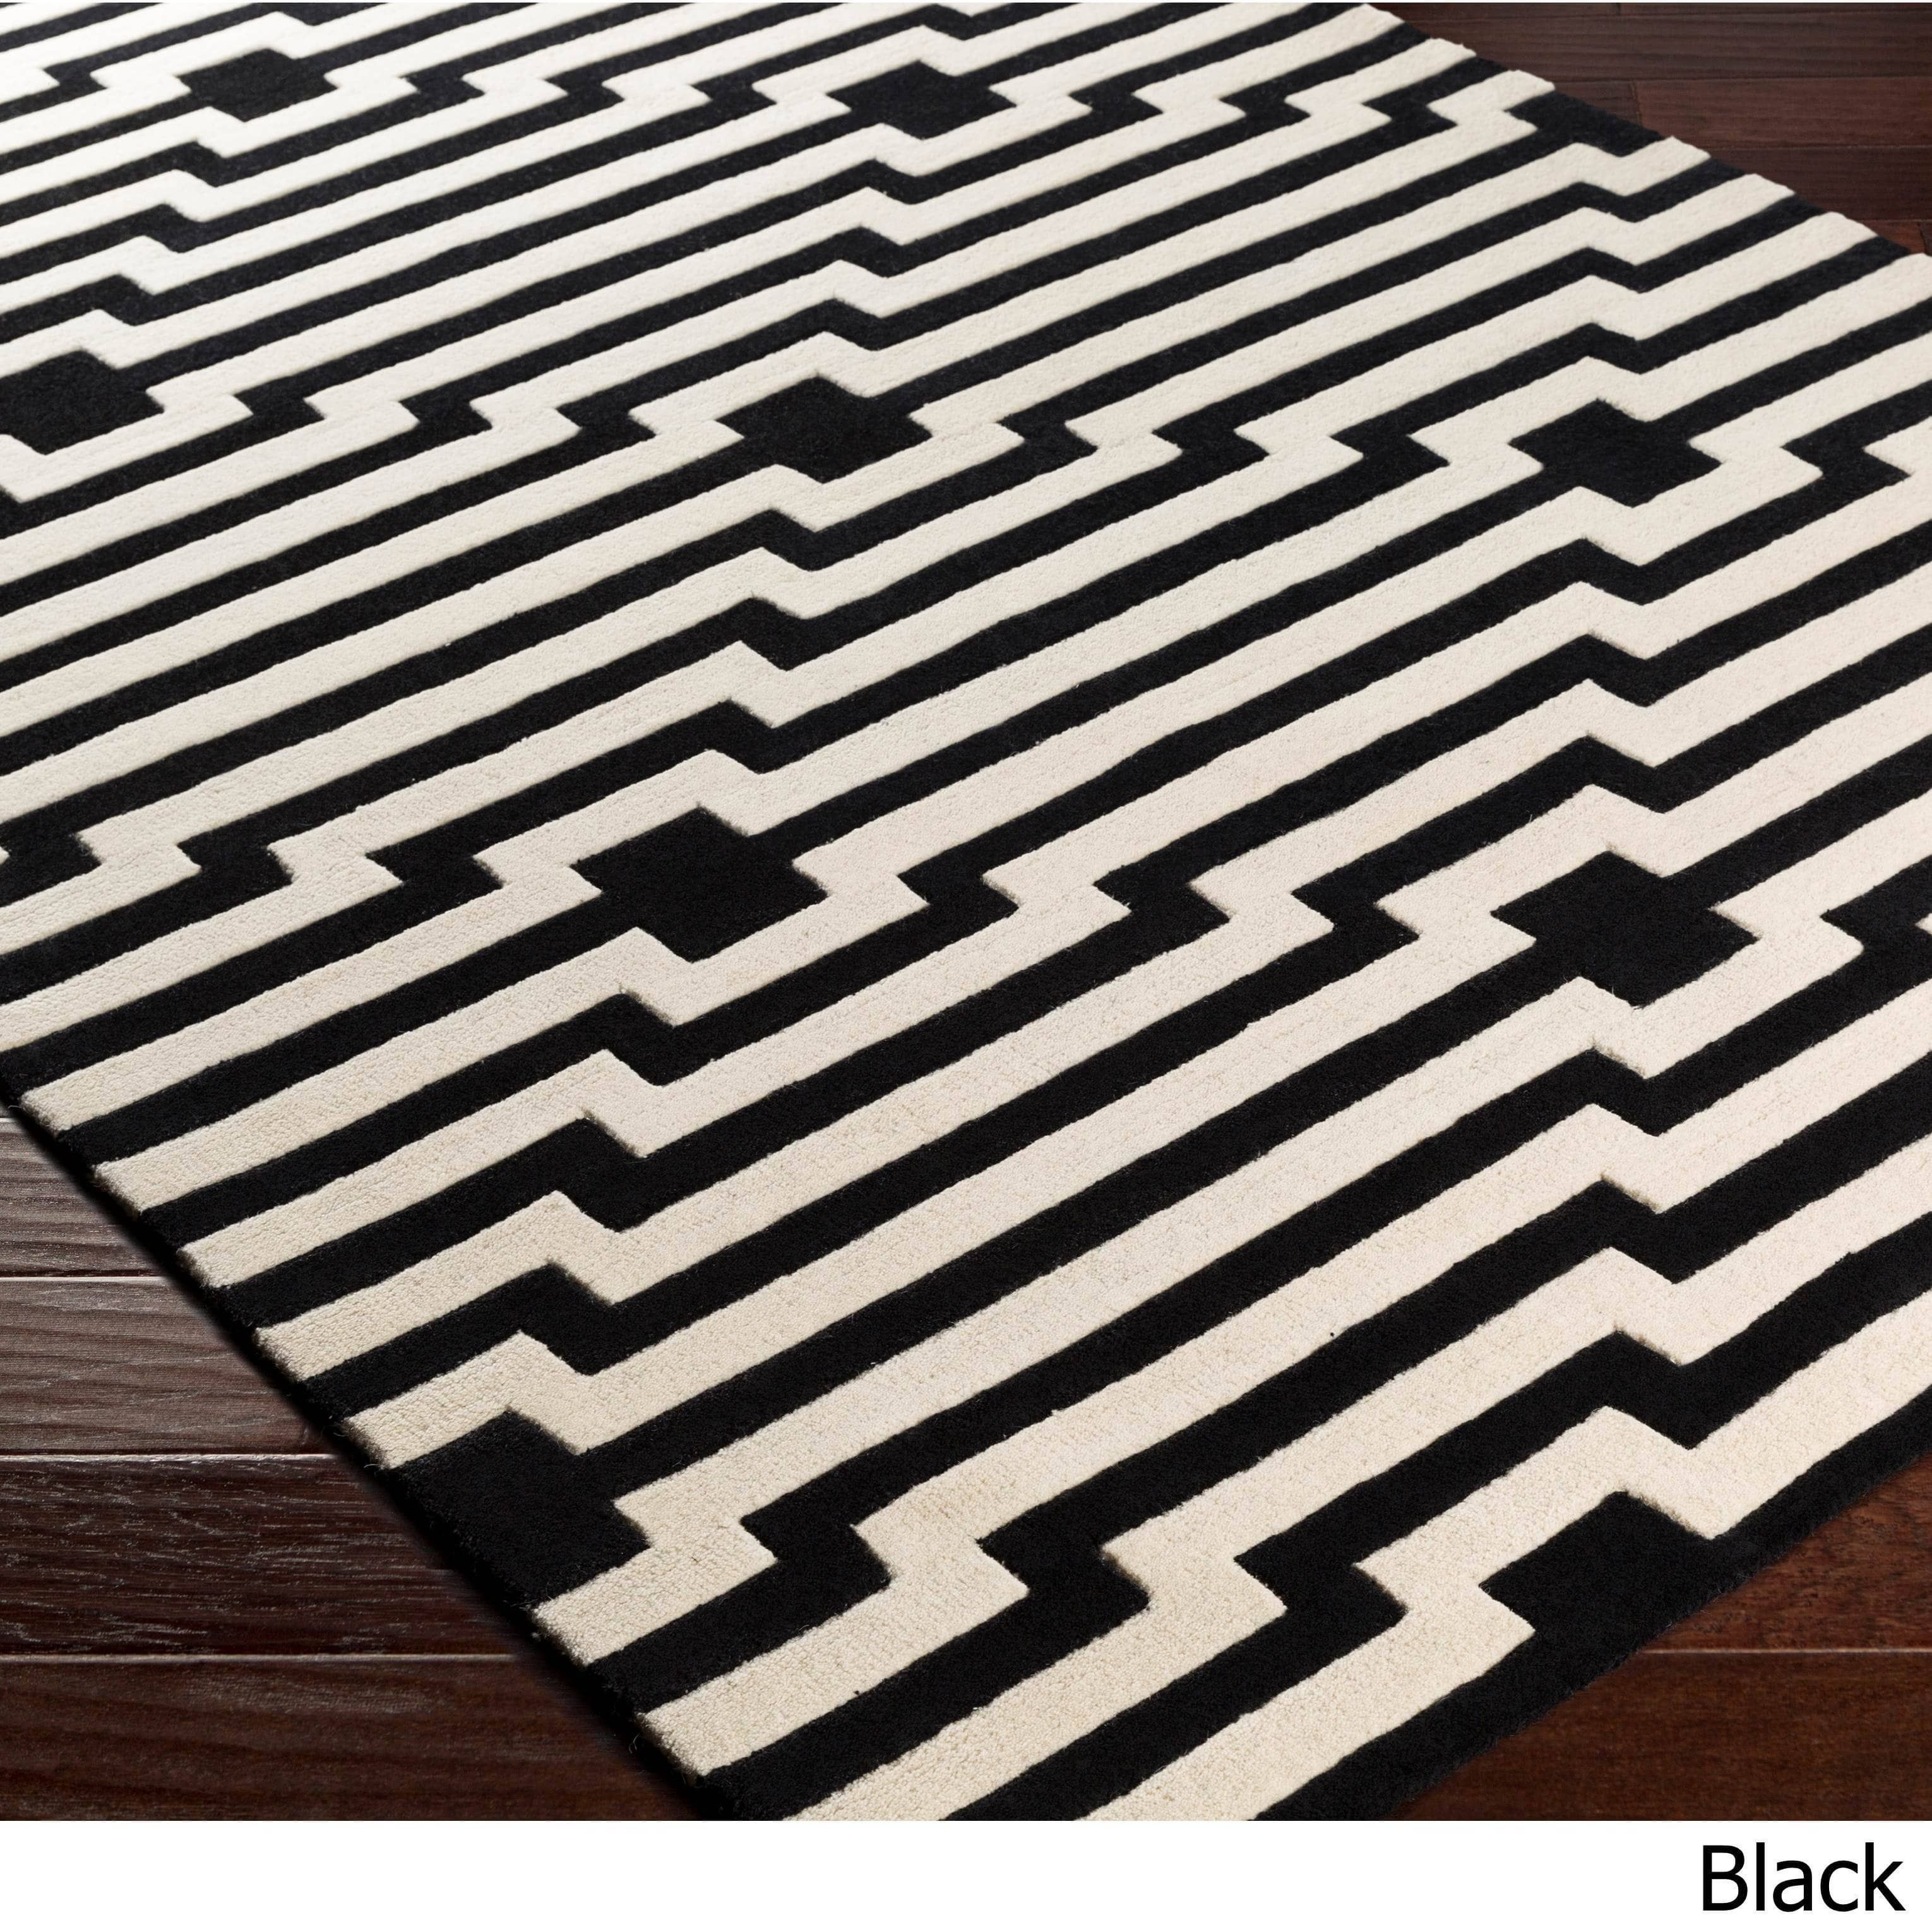 Volume Of A Square Pyramid Carpet On Carpet Rugs Area Carpet For Living In 2020 Wool Rug Simple Carpets Rugs